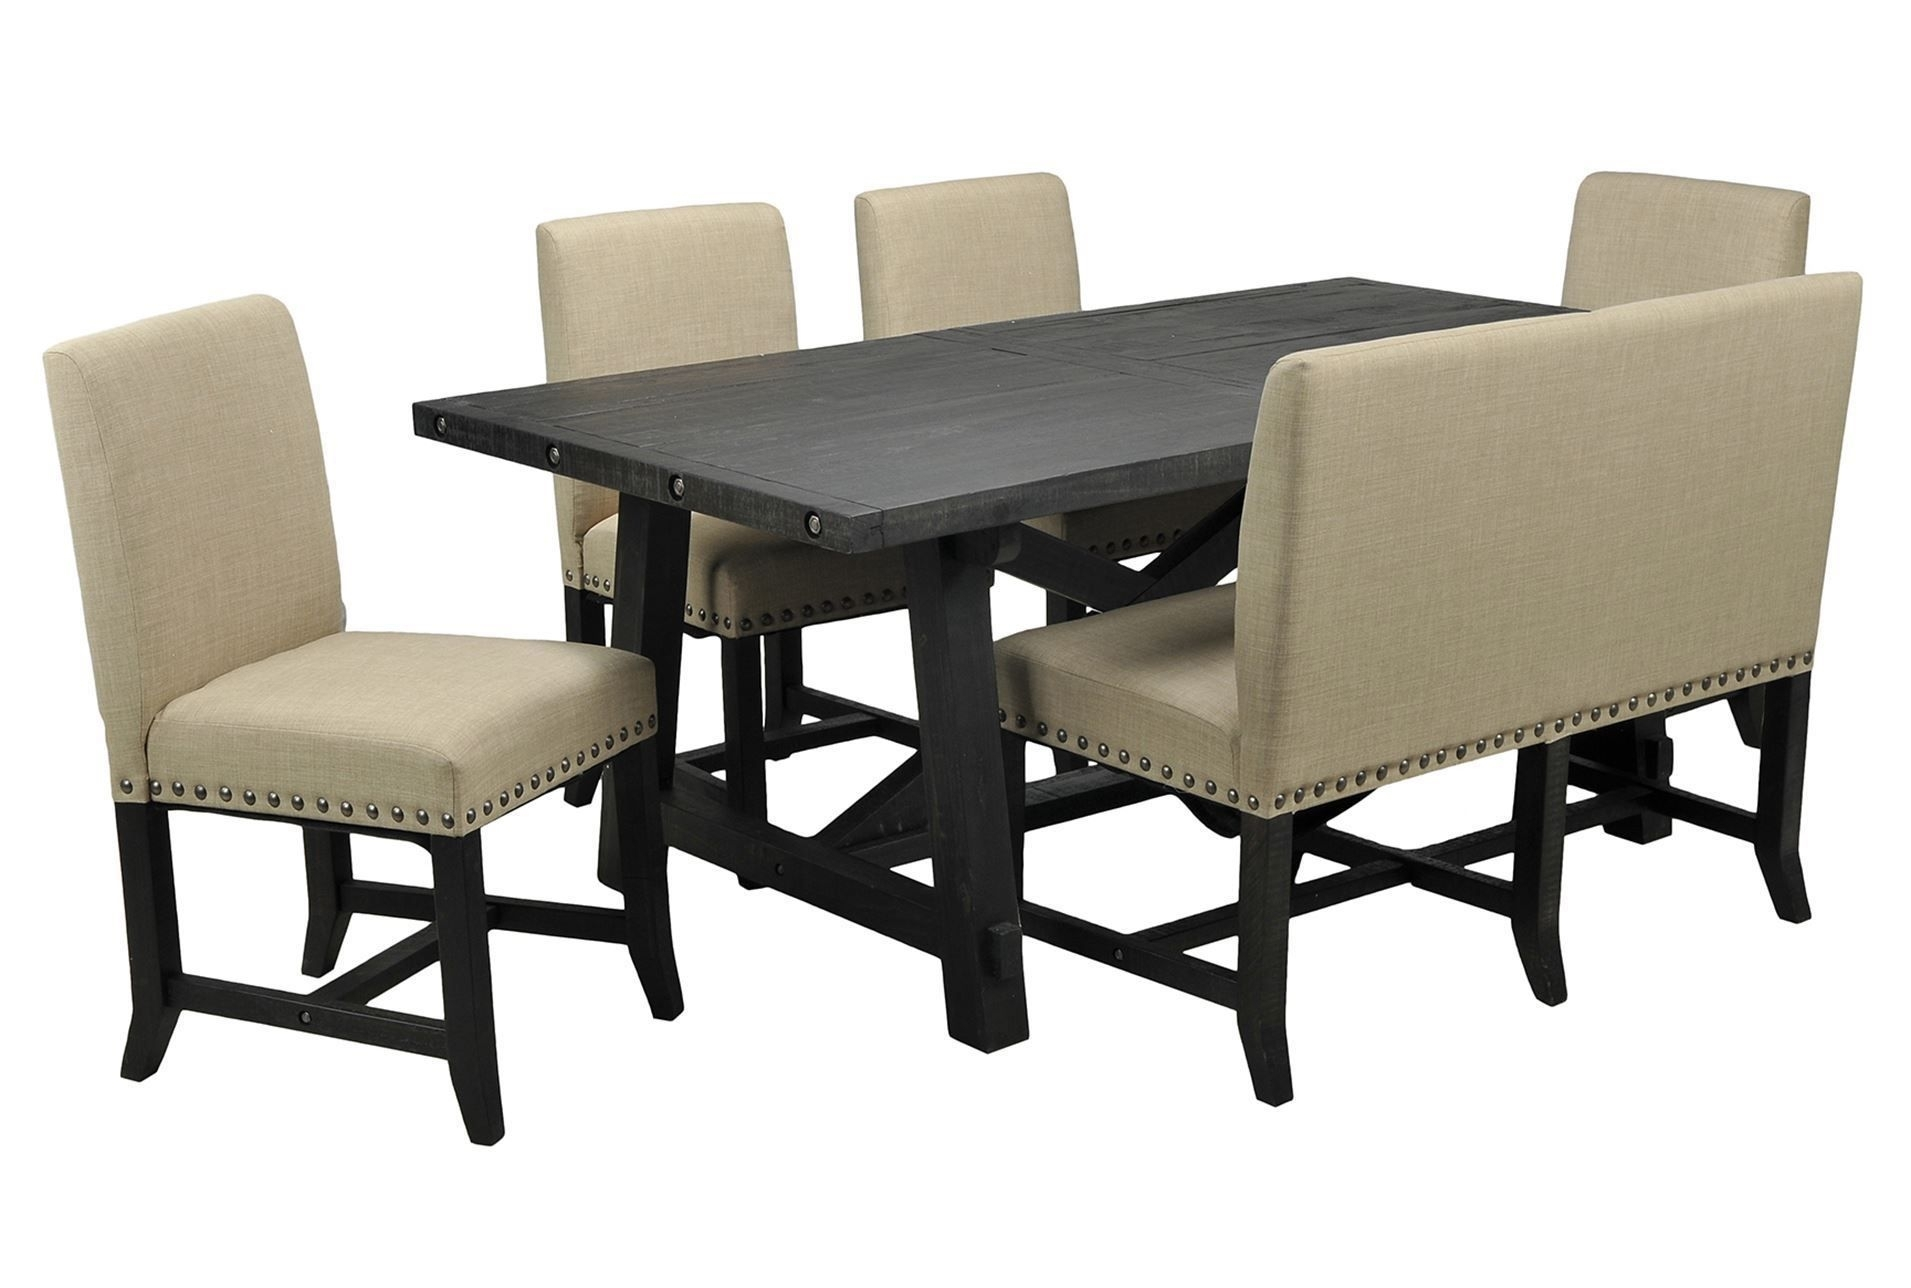 Jaxon 6 Piece Rectangle Dining Set W/bench & Uph Chairs | Home Decor Intended For 2017 Jaxon Grey 7 Piece Rectangle Extension Dining Sets With Uph Chairs (Photo 3 of 20)